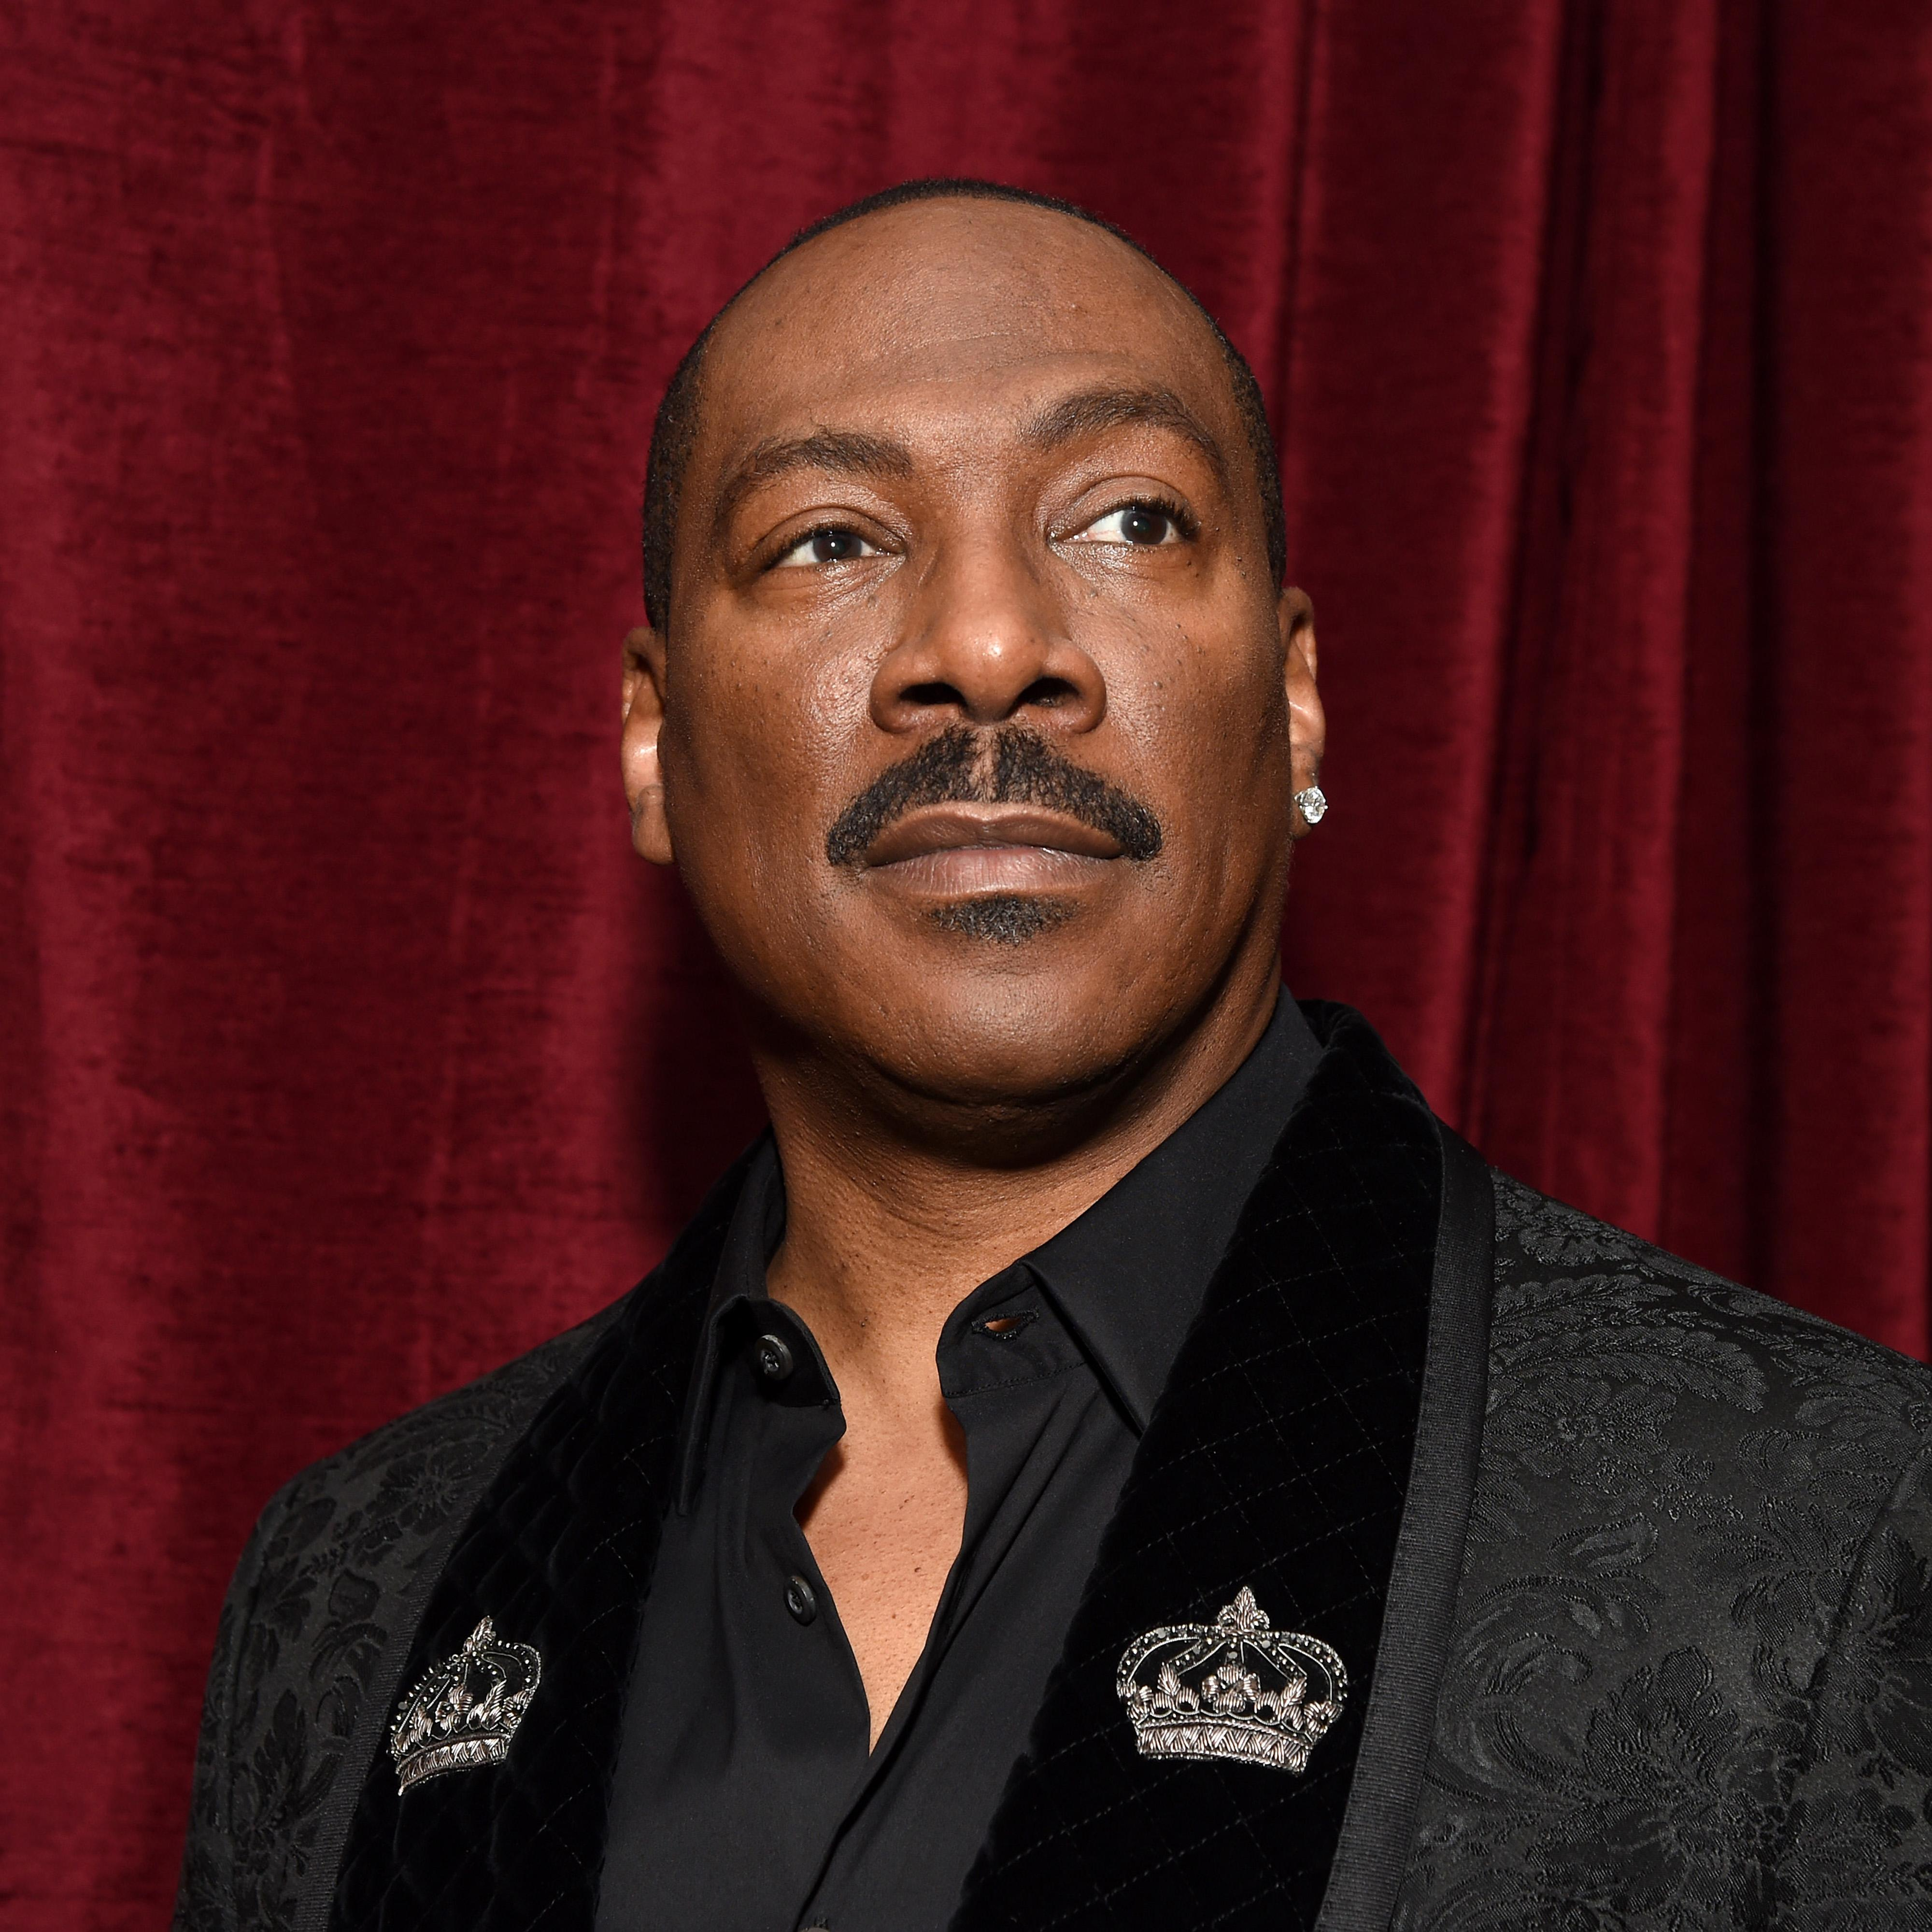 Eddie Murphy embarrassed by old jokes about gay people